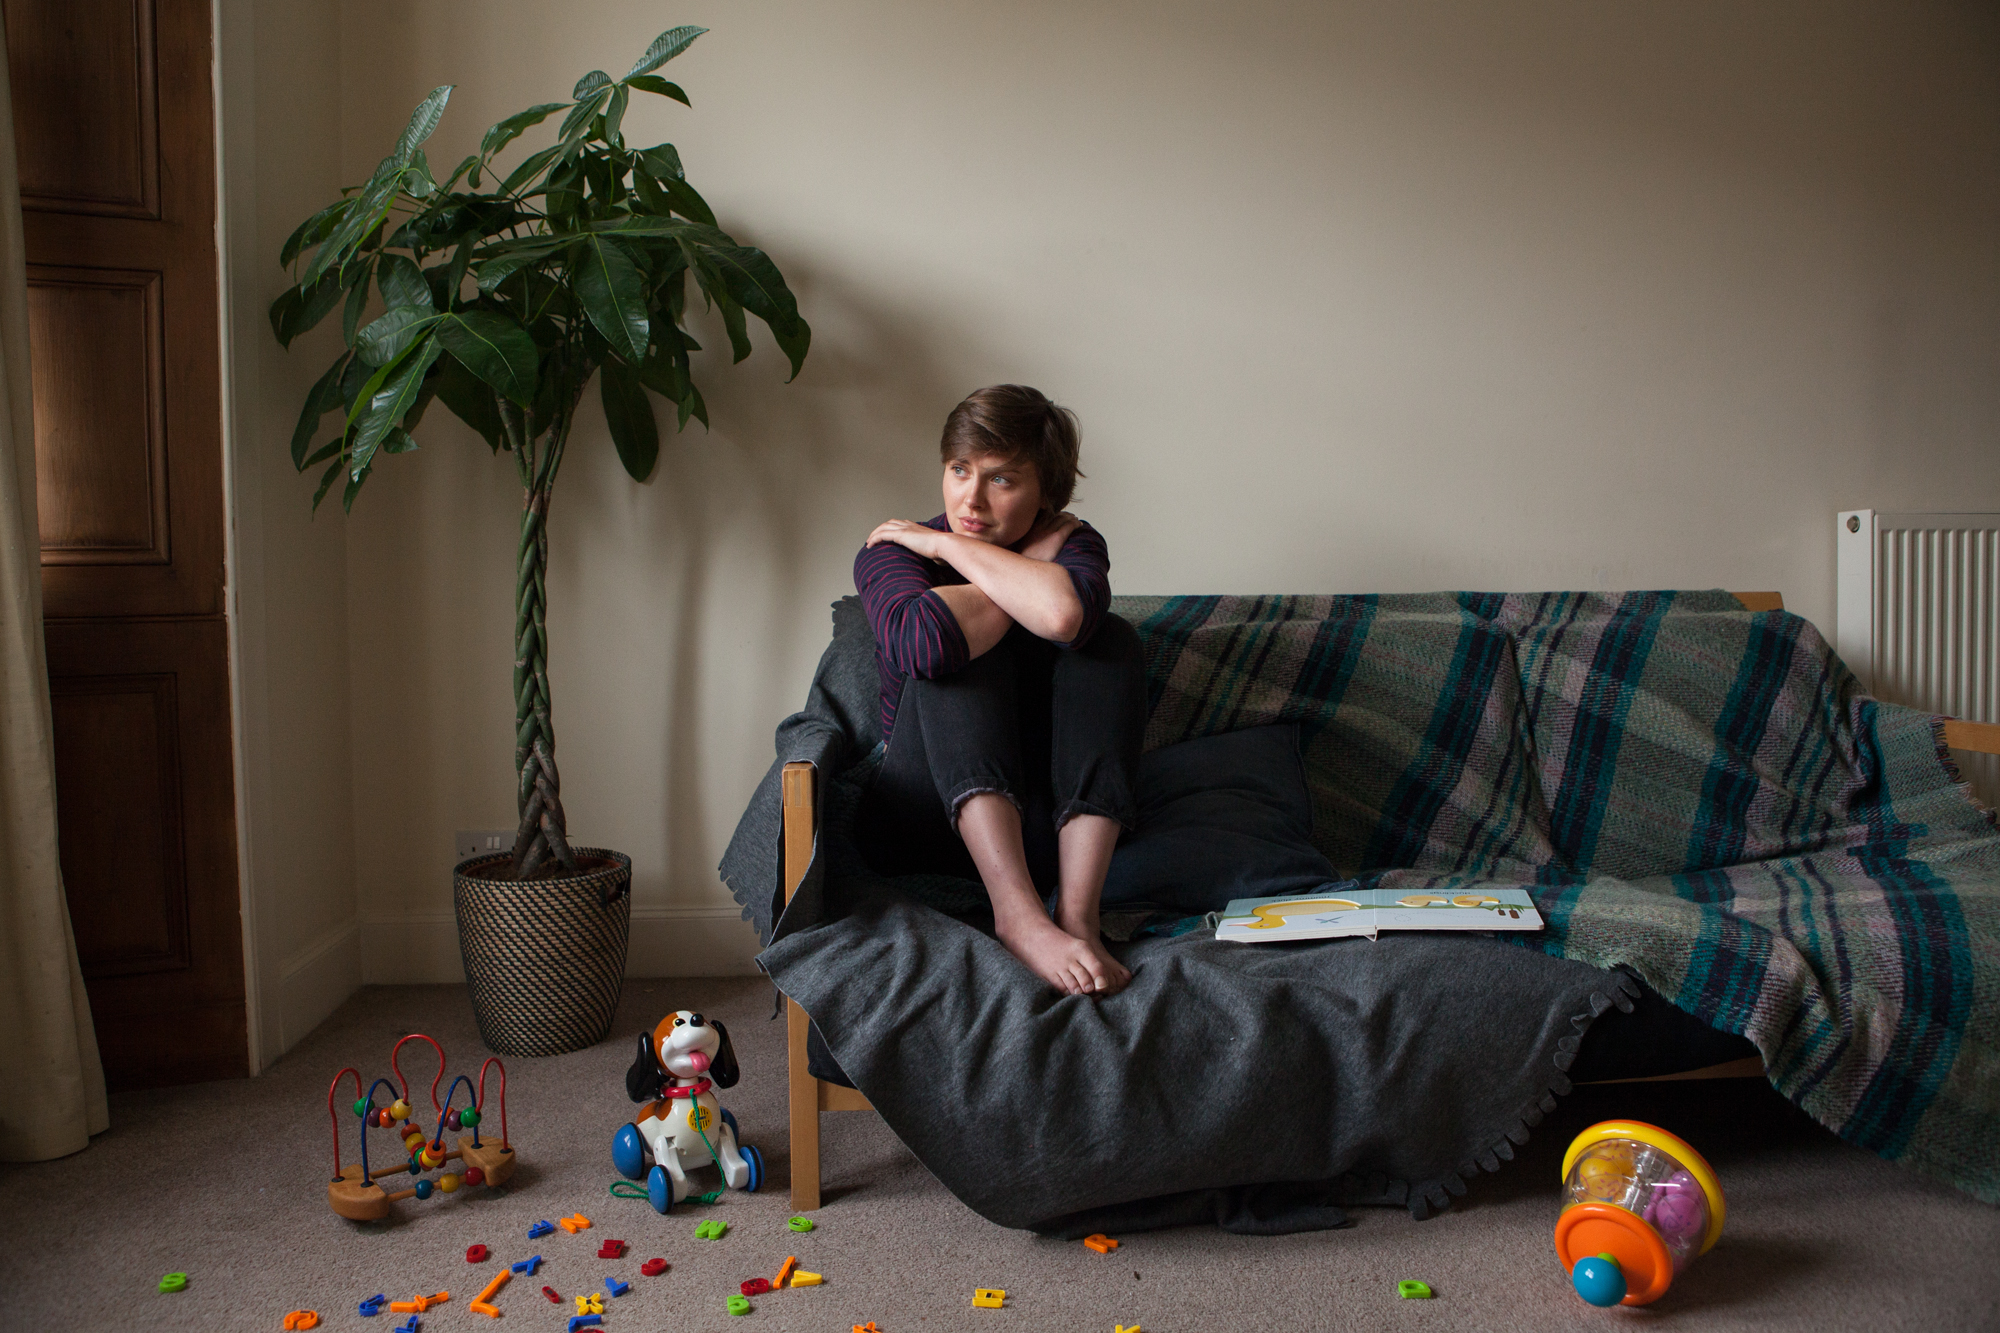 Image from One thousand words by Laura Dodsworth depicting domestic abuse